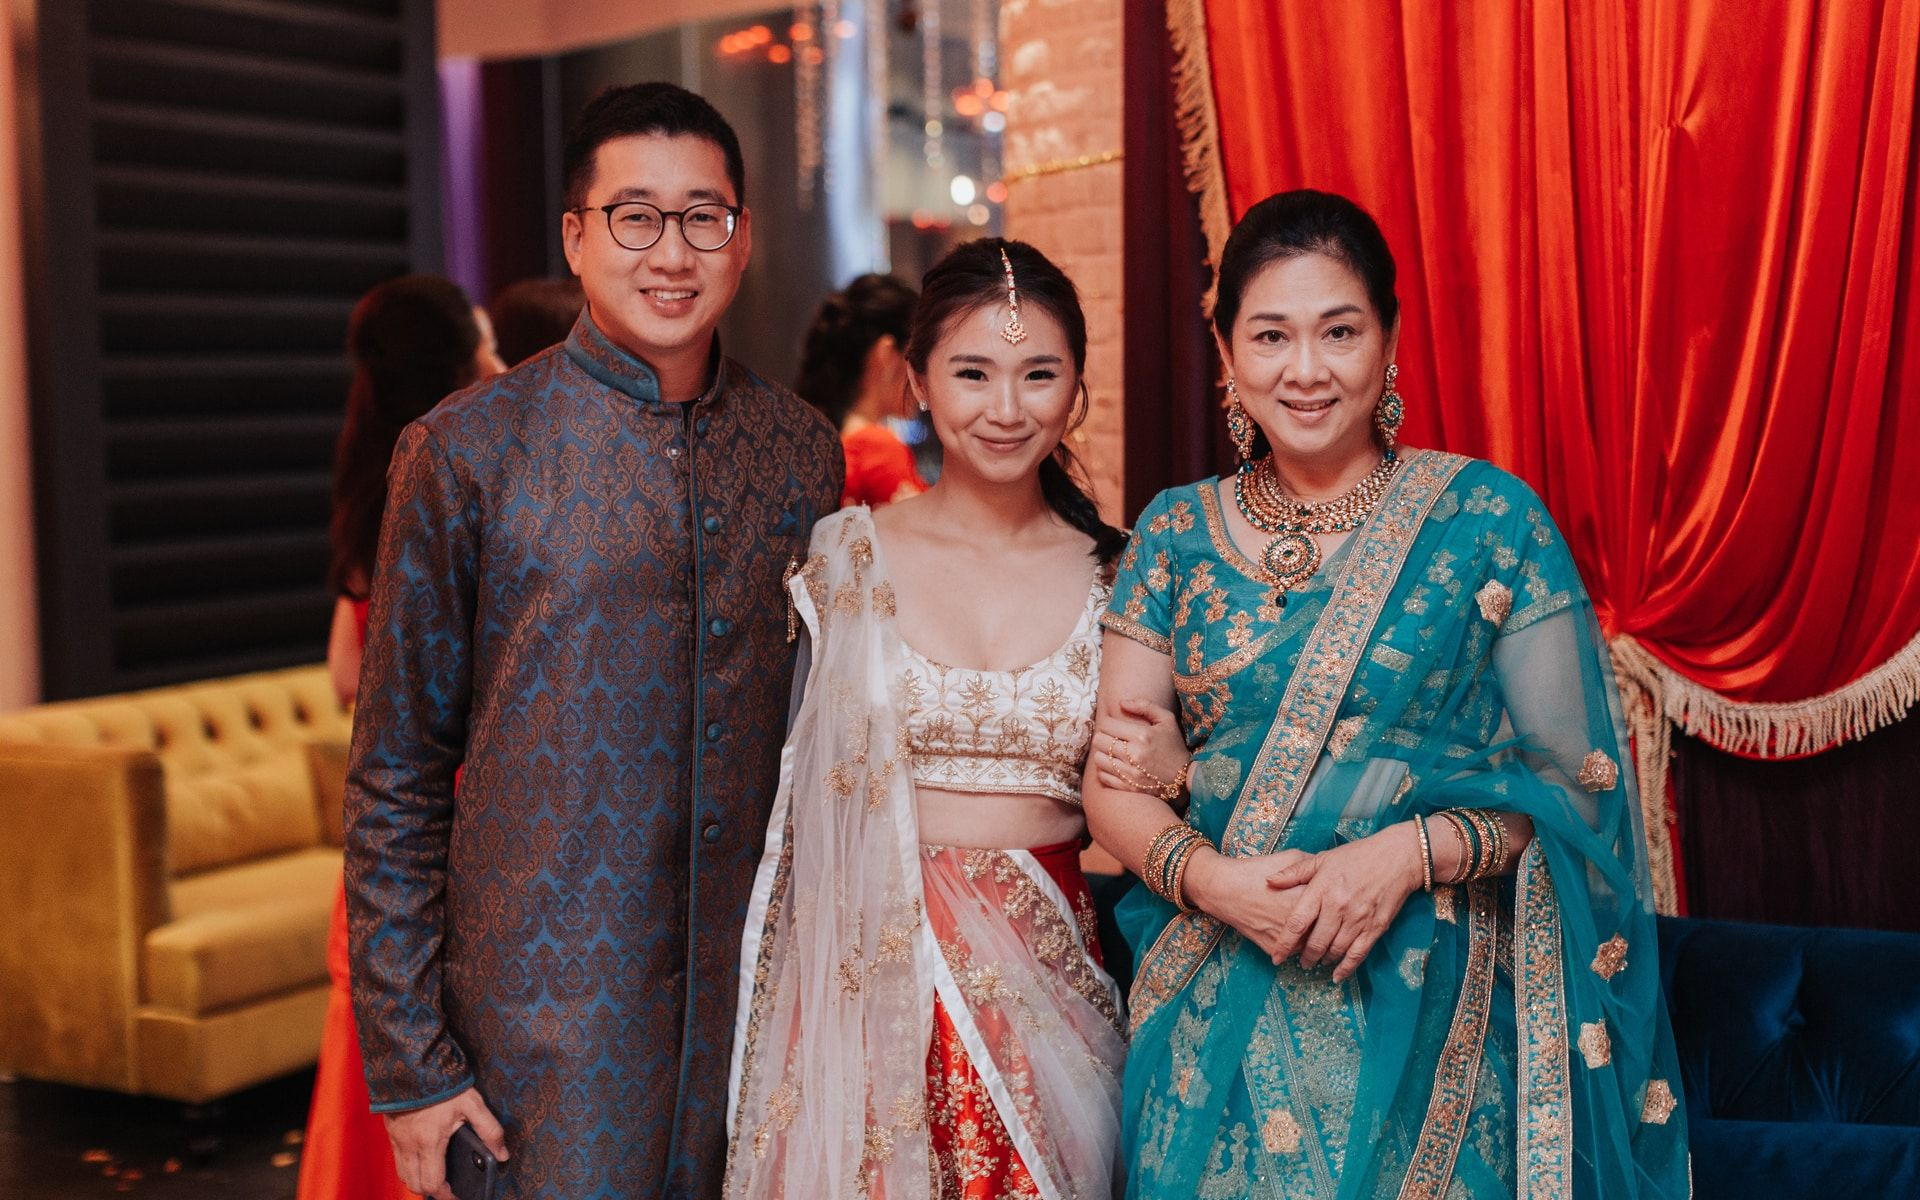 Robin Ang, Dianna Lee and Puan Sri Tan Bee Hong